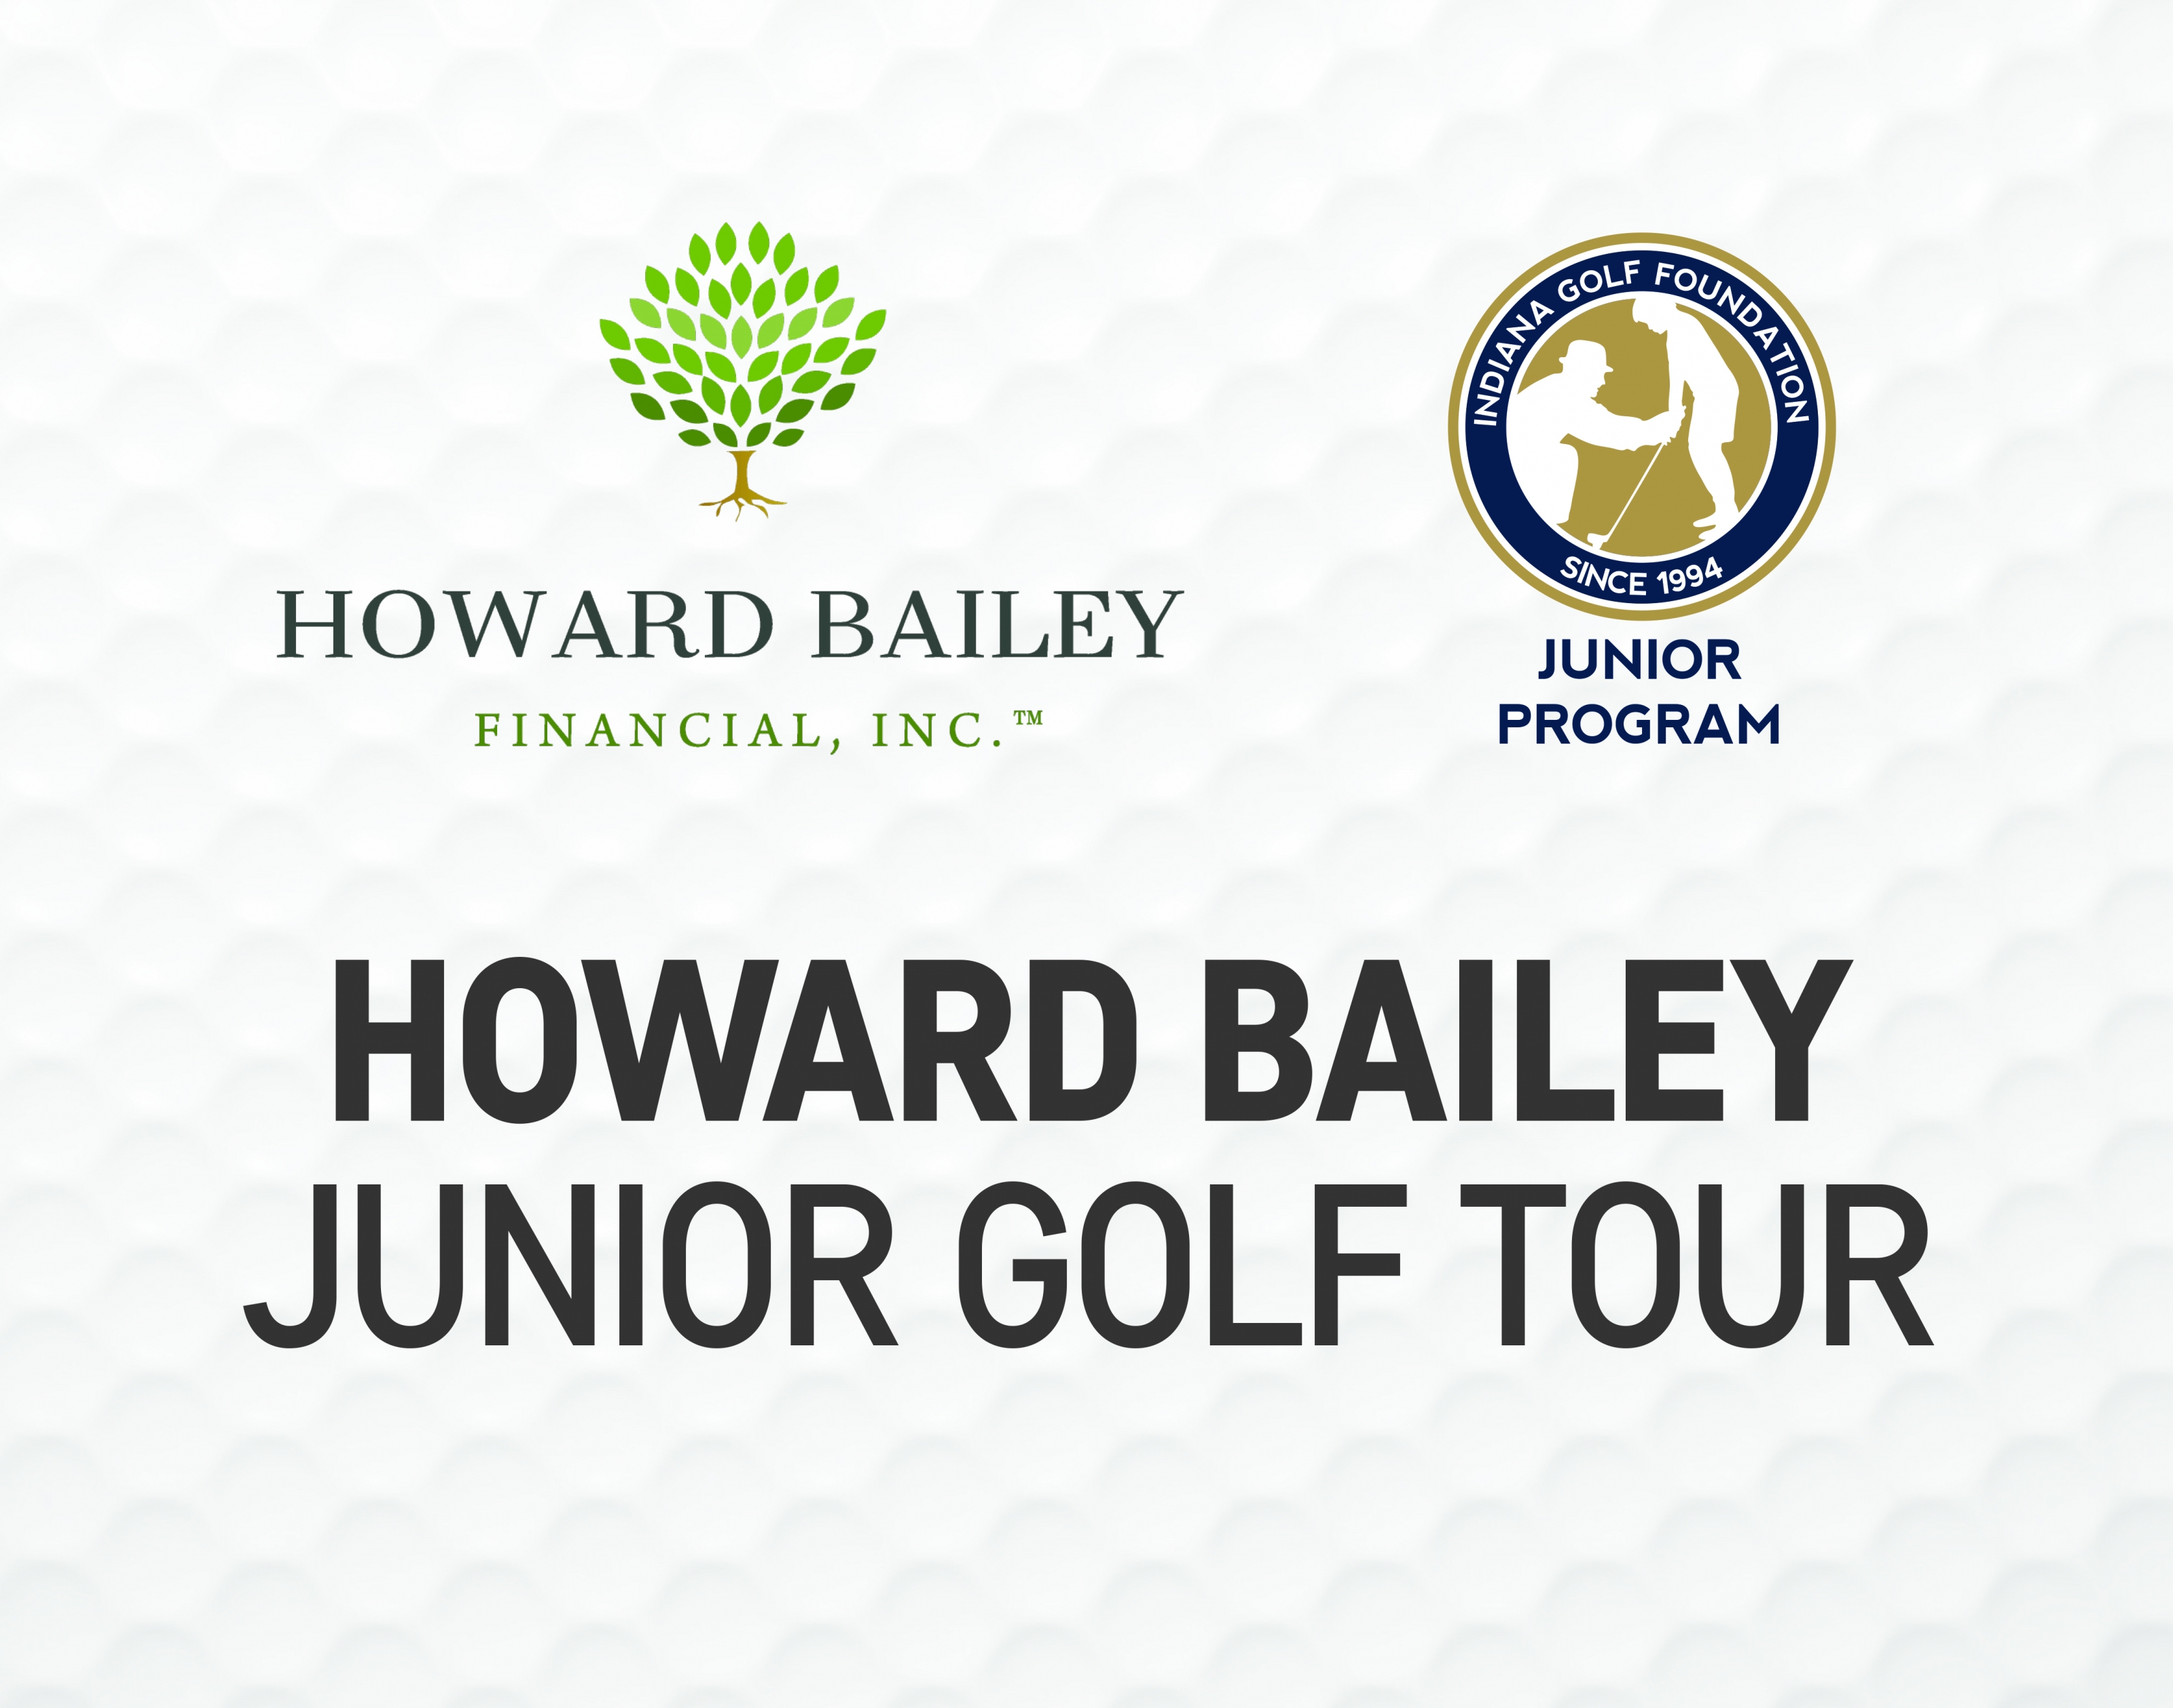 Howard Bailey Financial to Sponsor Indiana Junior Golf Tour